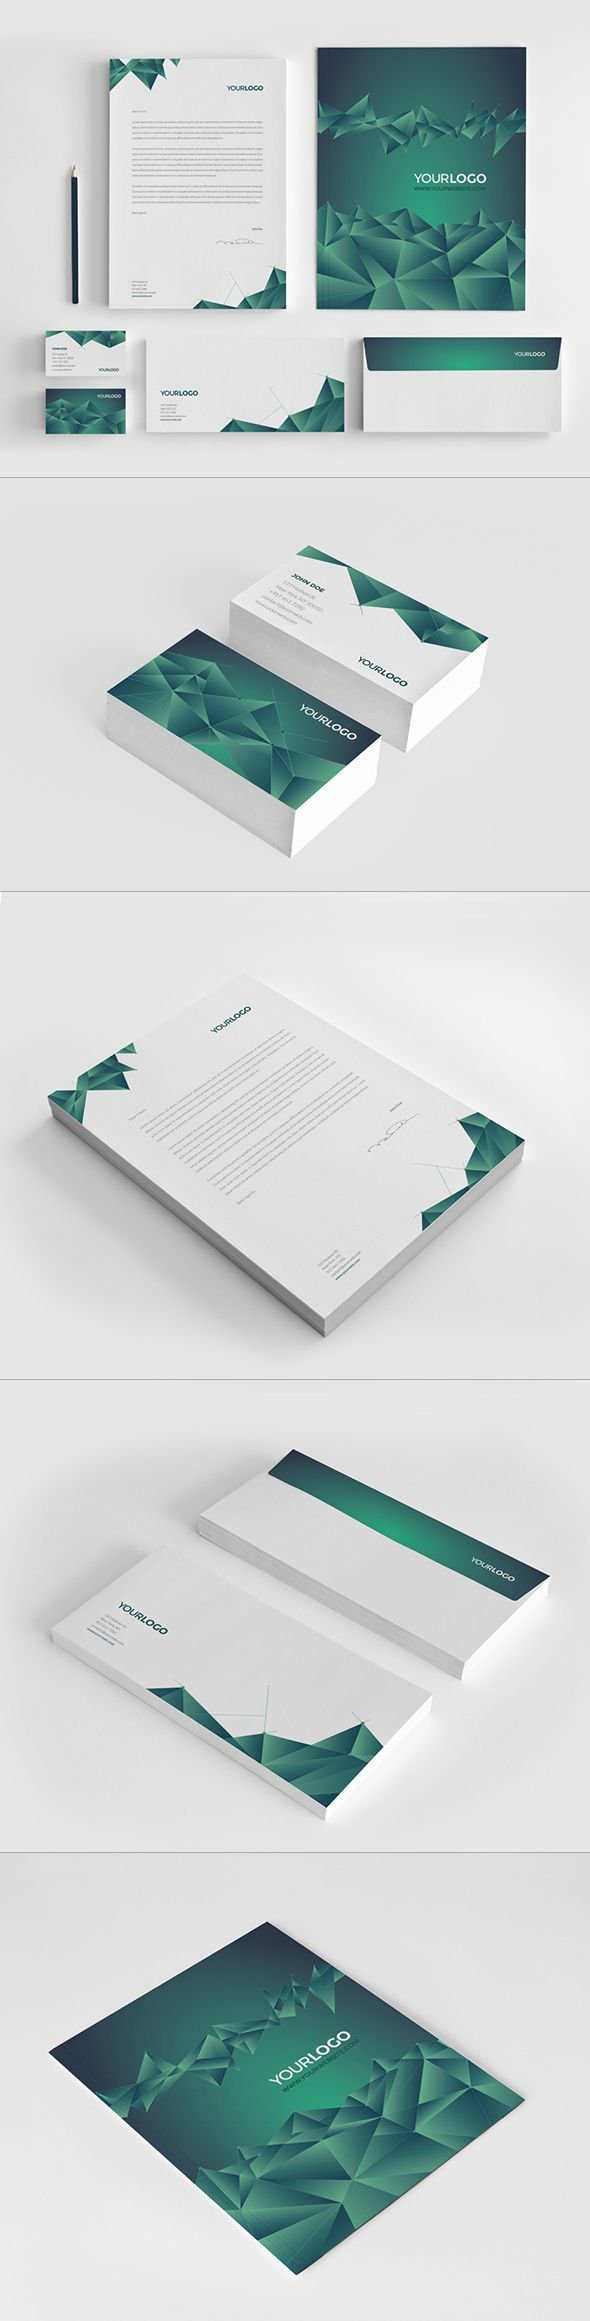 Green Galaxy Stationery. Download here: http://graphicriver.net/item/green-galaxy-stationery/8177390?ref=abradesign?ref=abradesign #design #stationery